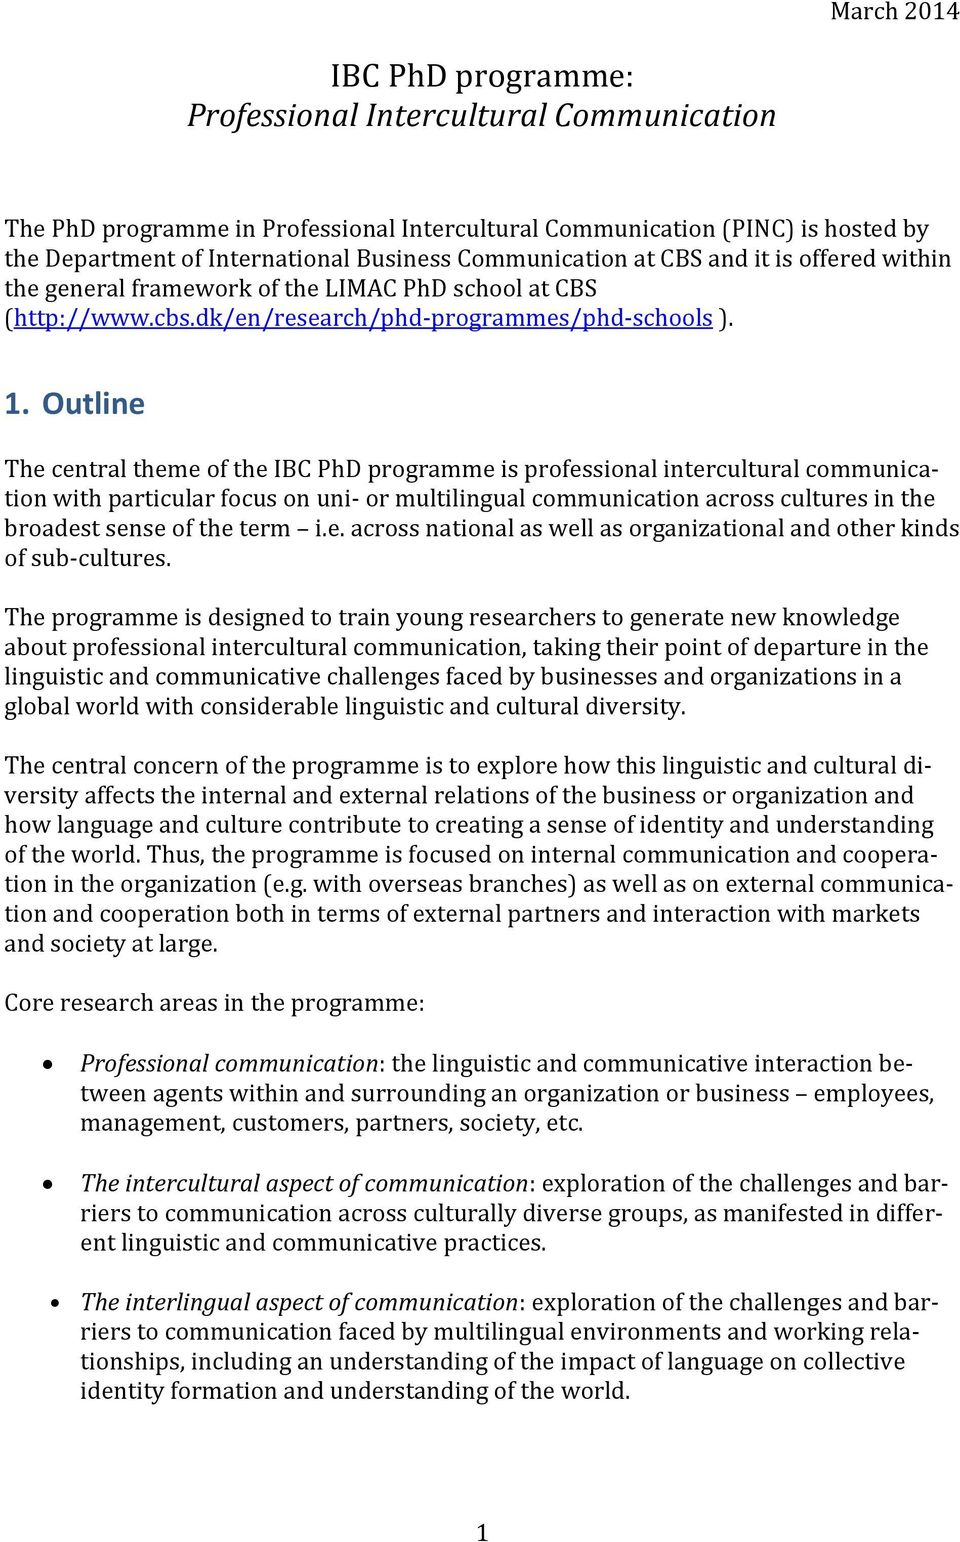 Outline The central theme of the IBC PhD programme is professional intercultural communication with particular focus on uni- or multilingual communication across cultures in the broadest sense of the